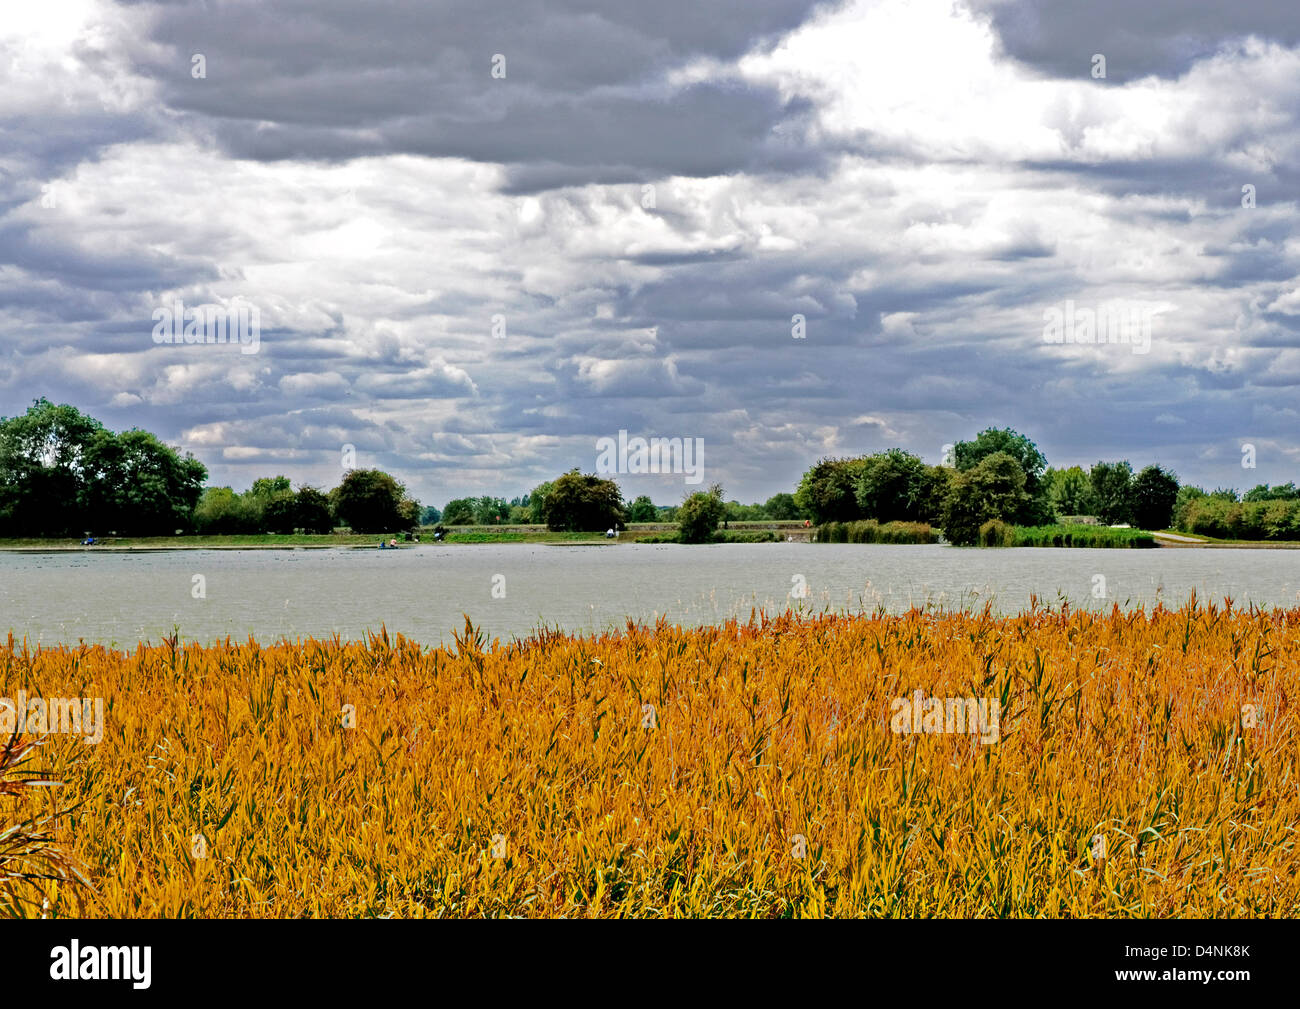 Bucks - Startops End reservoir - reed beds - shining water - summer day - mother of pearl sky - computer enhanced - Stock Image